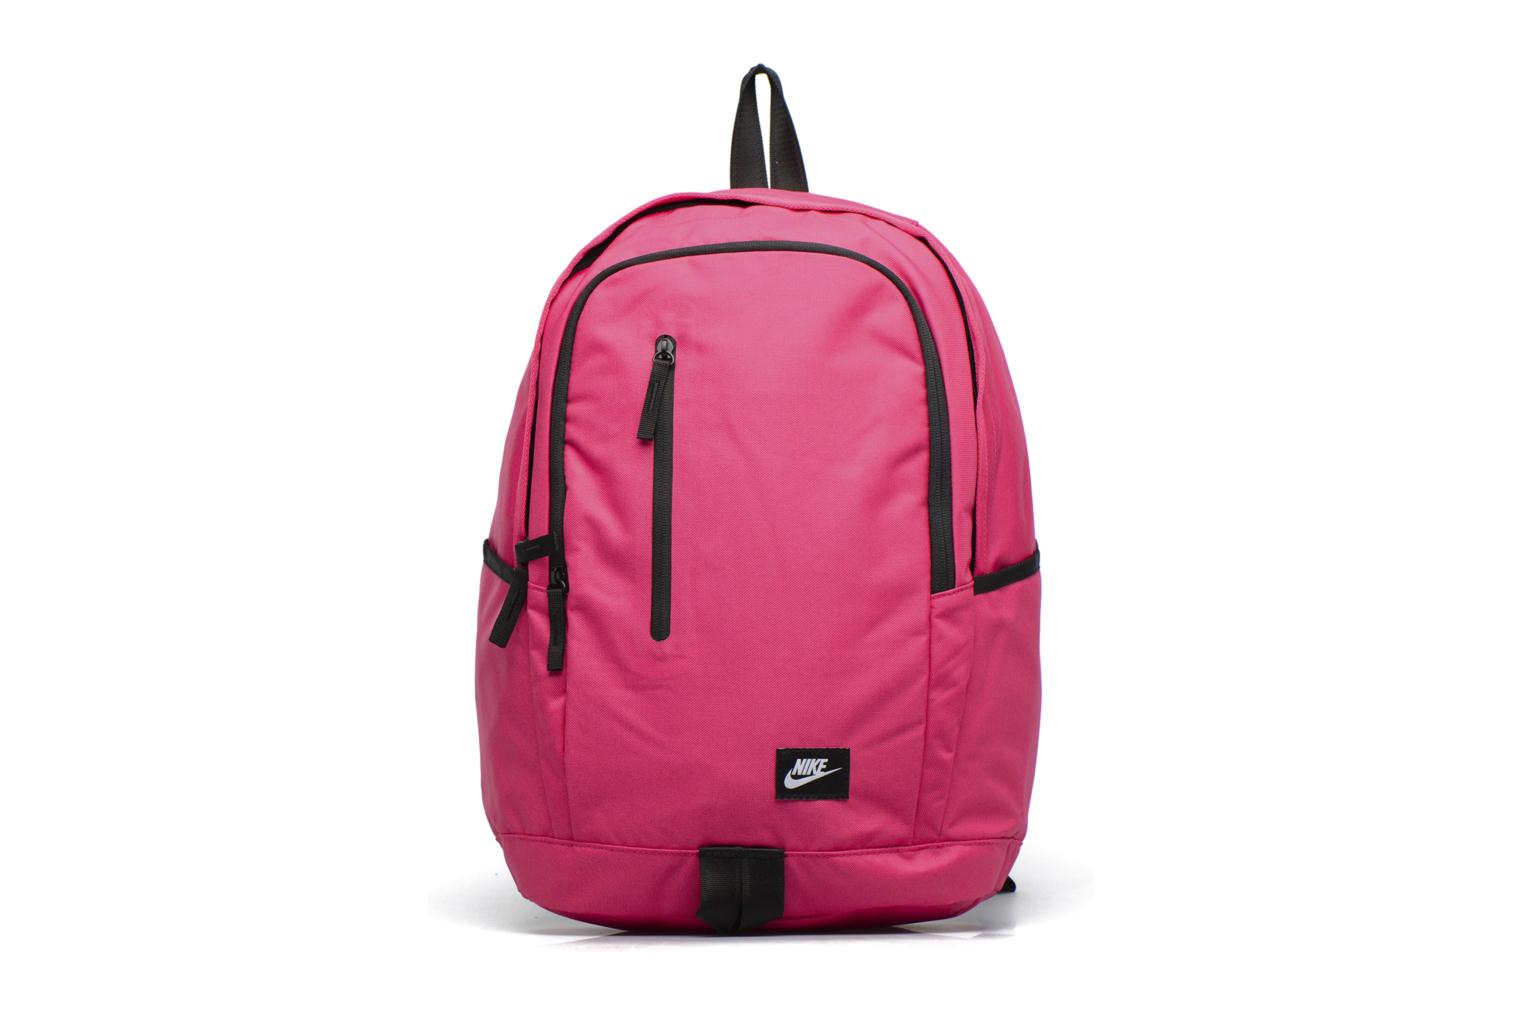 Sacs à dos Nike Nike Soleday Backpack S Rose vue détail/paire